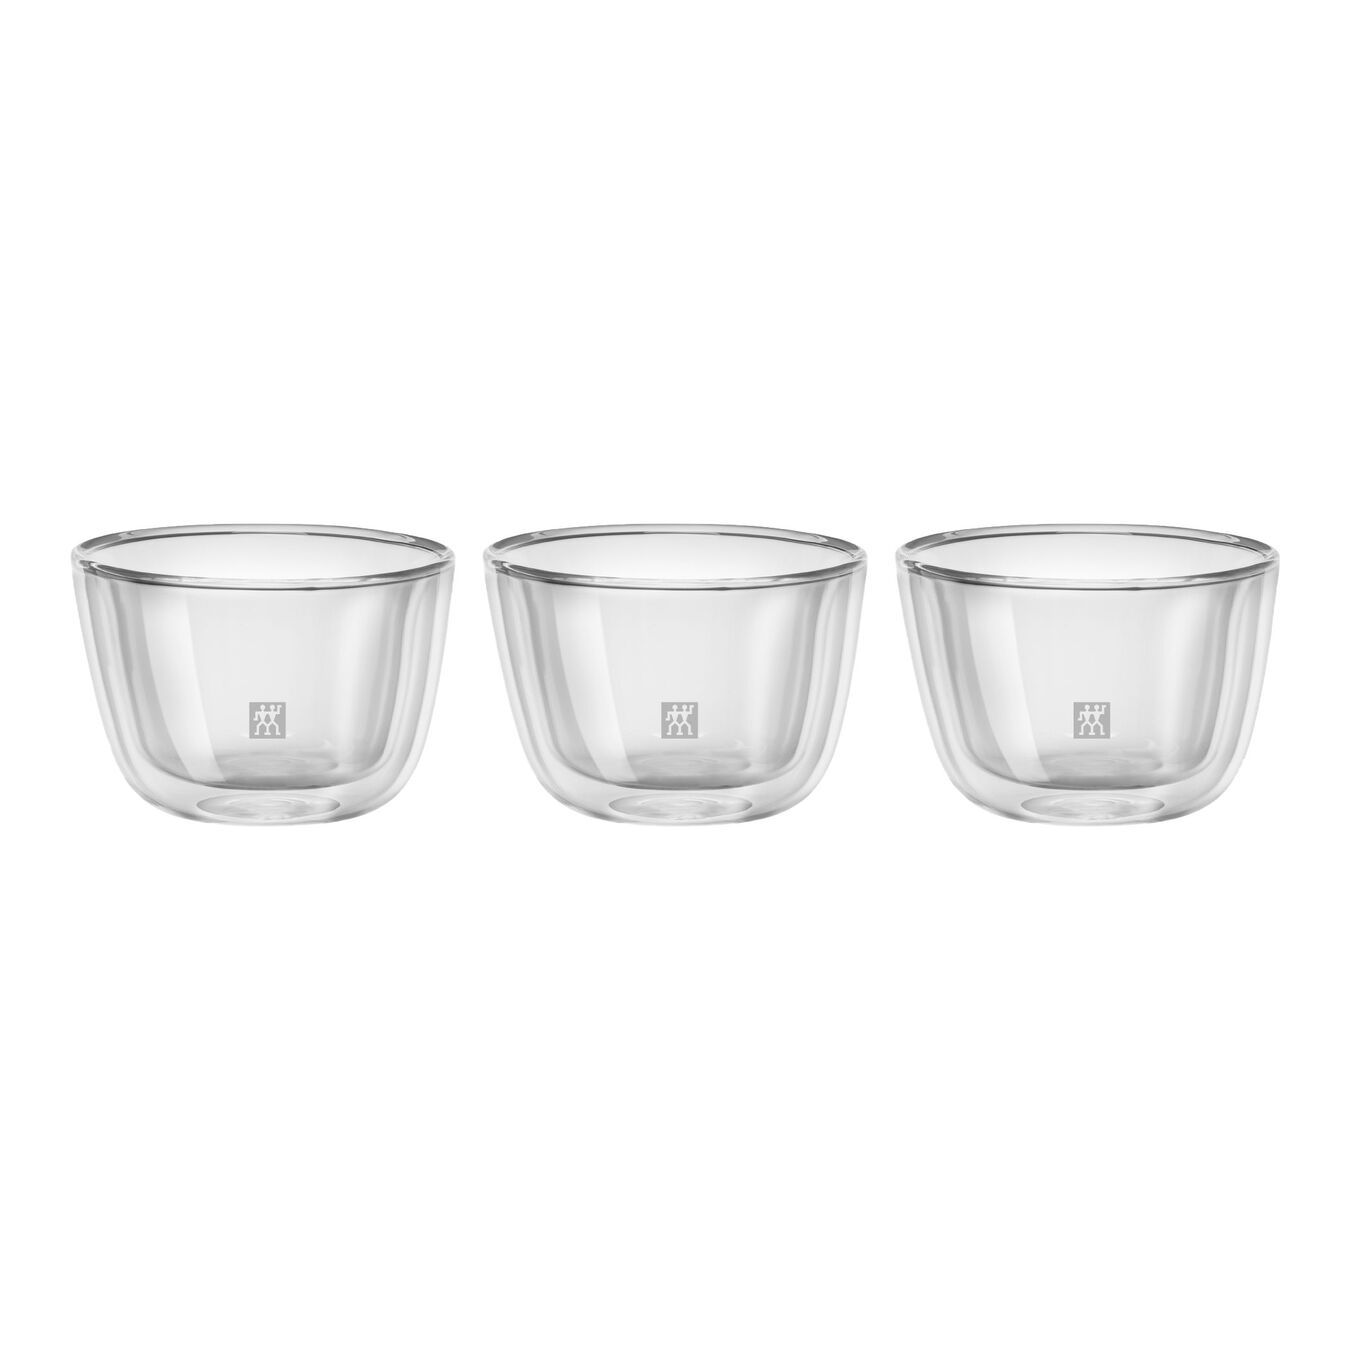 3 PIECE DOUBLE-WALL GLASS TAPAS/APPETIZER BOWL SET,,large 1